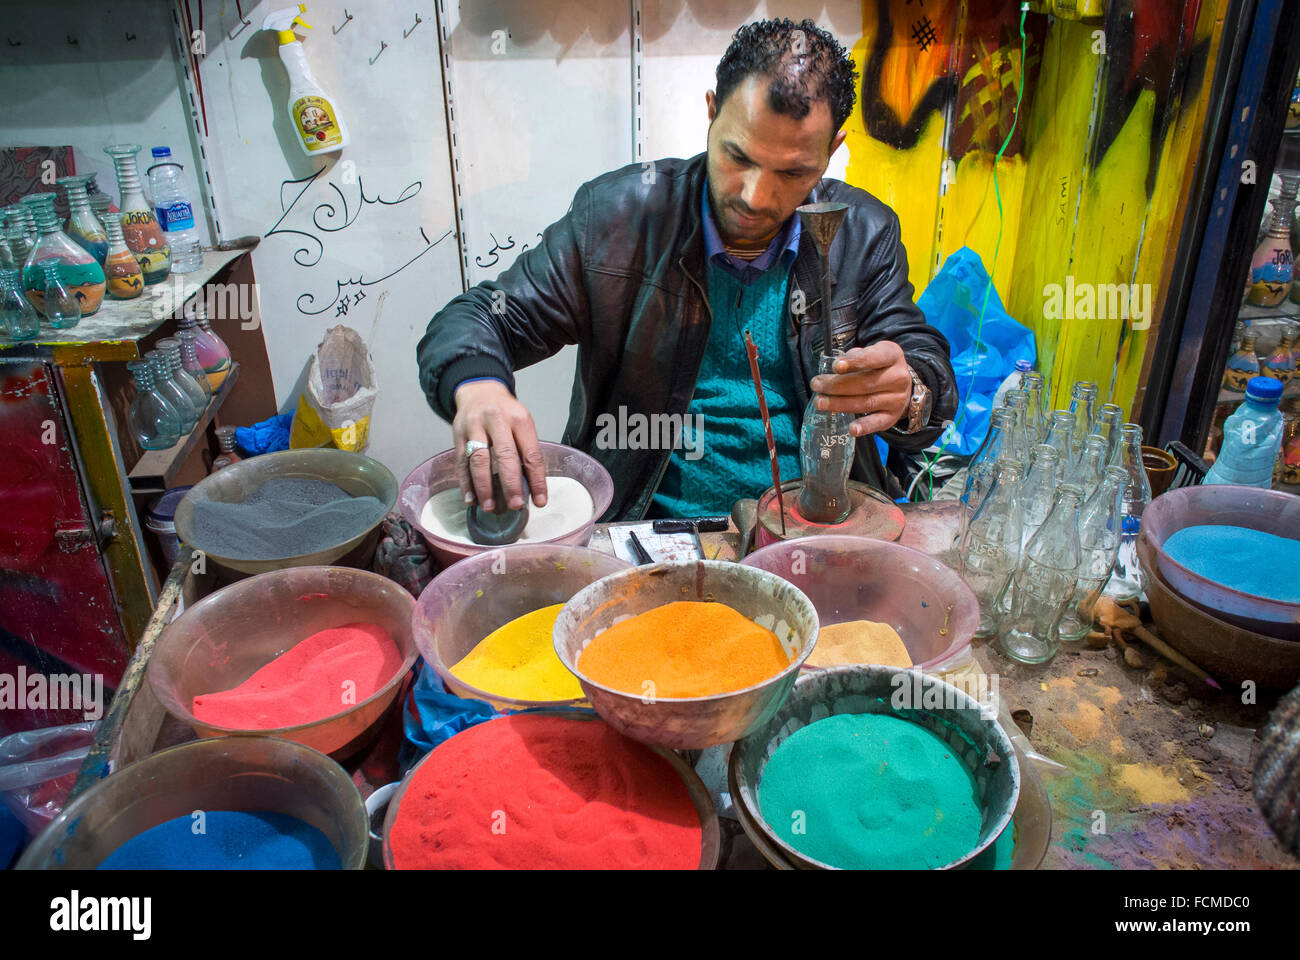 A street sand artist in the Downtown area of Amman fills bottles with sand as gifts in Amman, Jordan. - Stock Image